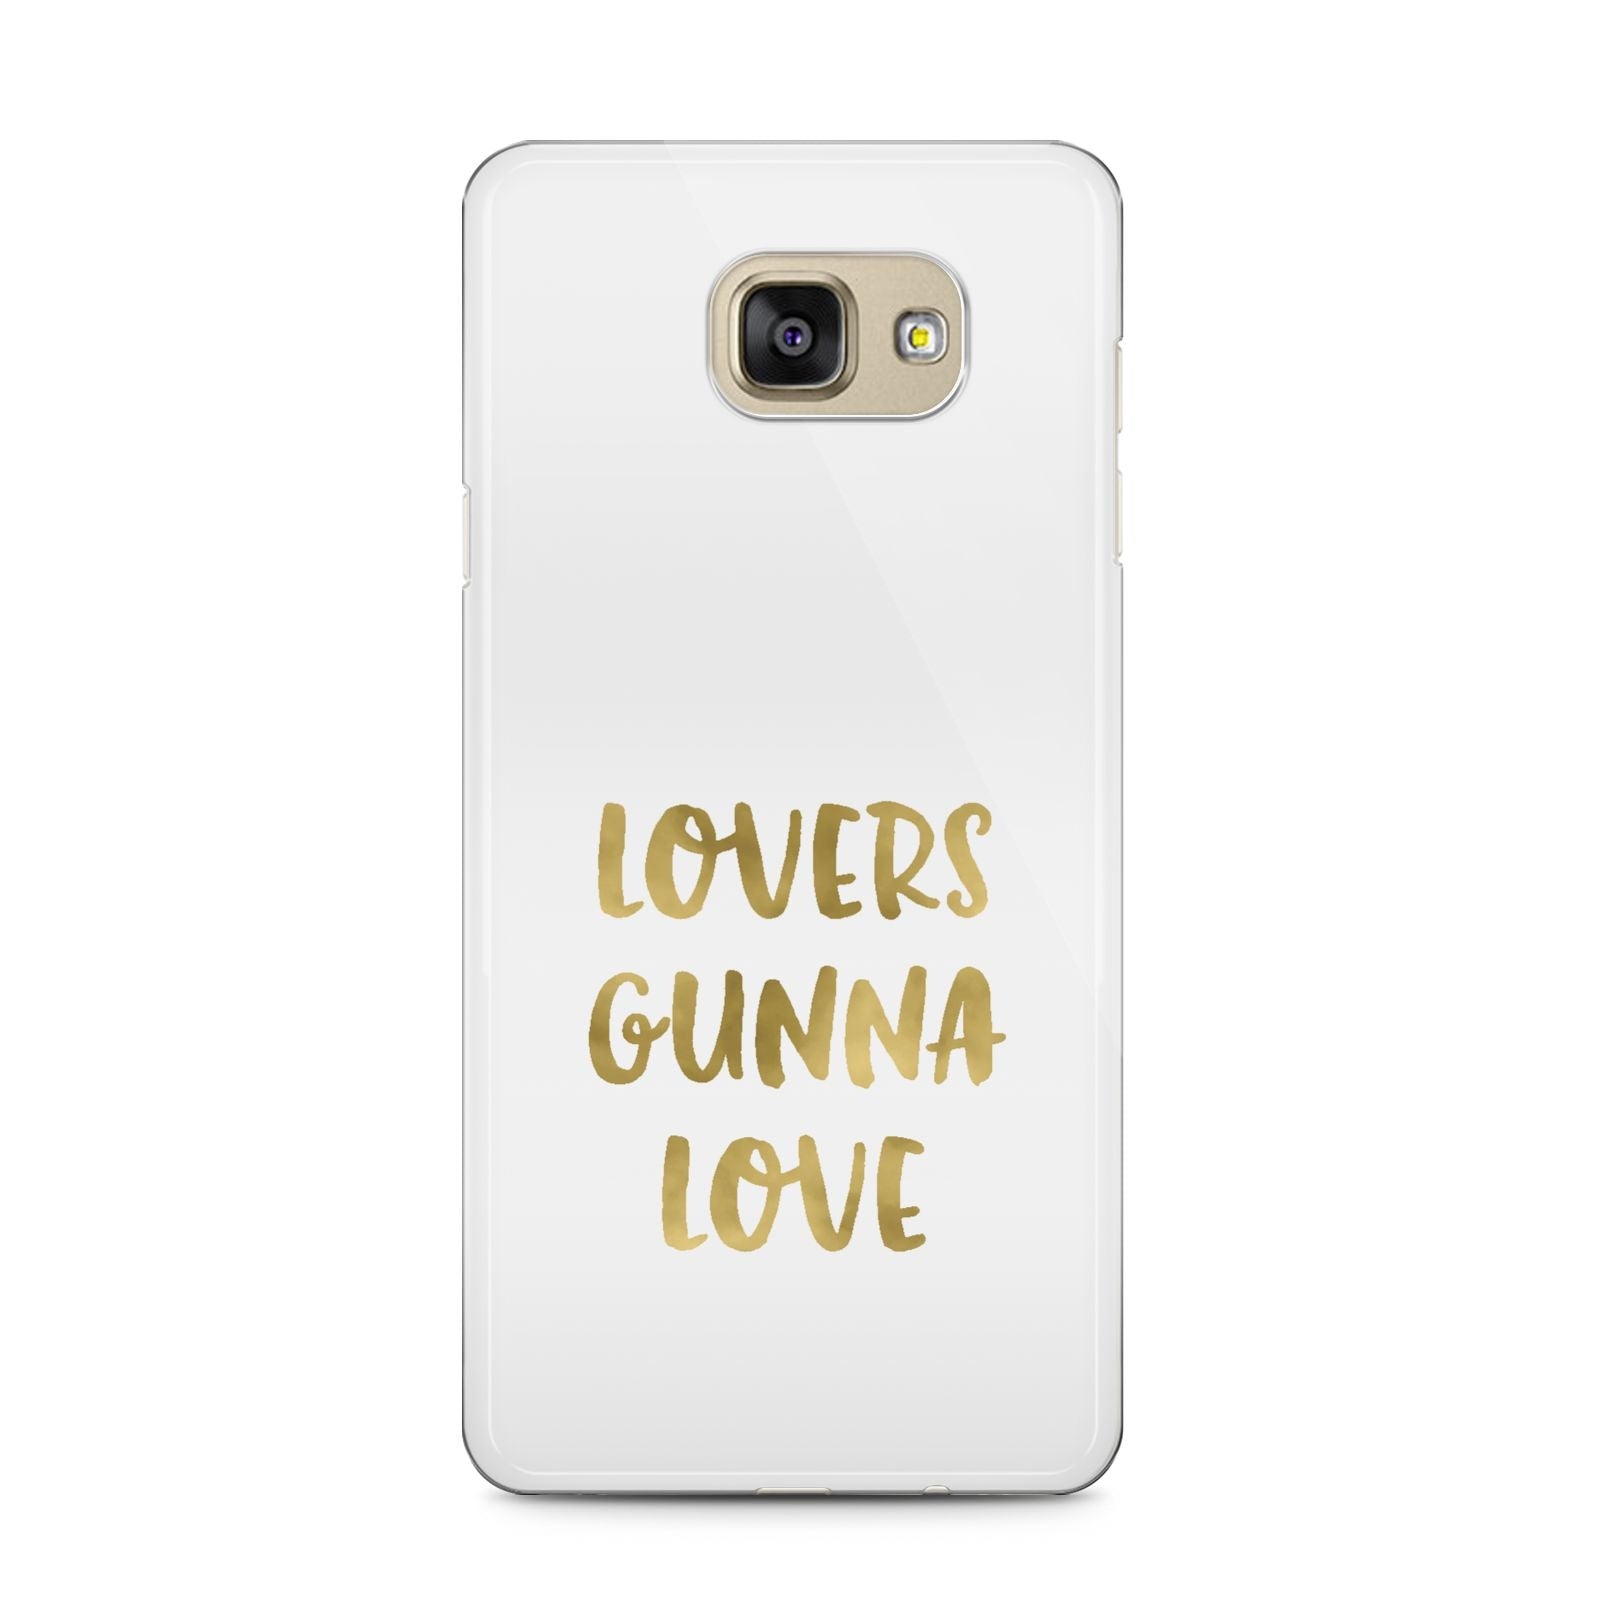 Lovers Gunna Love Real Gold Foil Samsung Galaxy A5 2016 Case on gold phone